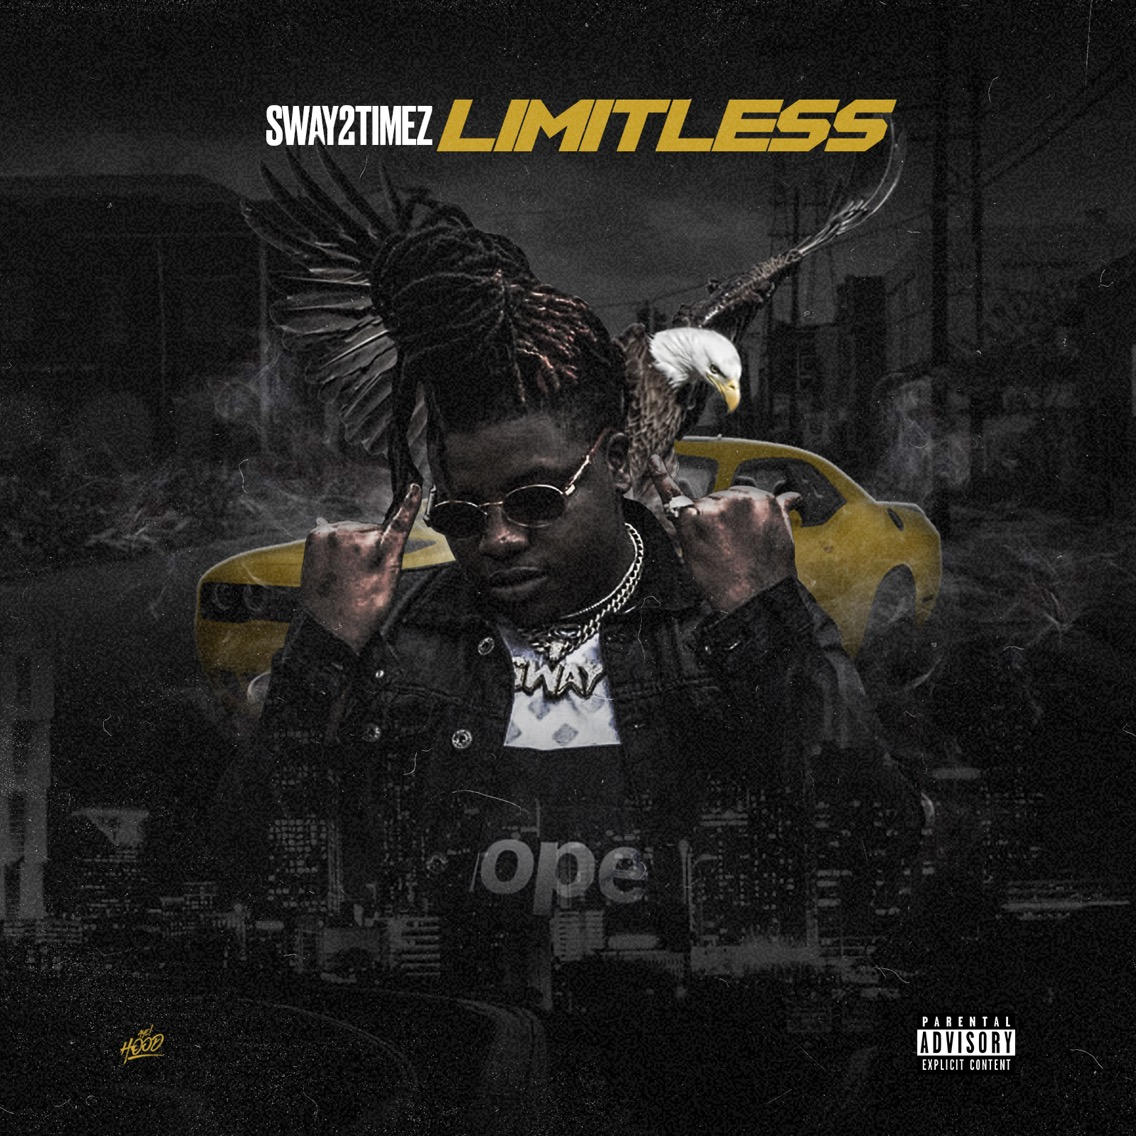 American Rapper, sway2timez, Releases A Mixtape Titled 'Limitless' On Spotify And Apple Music